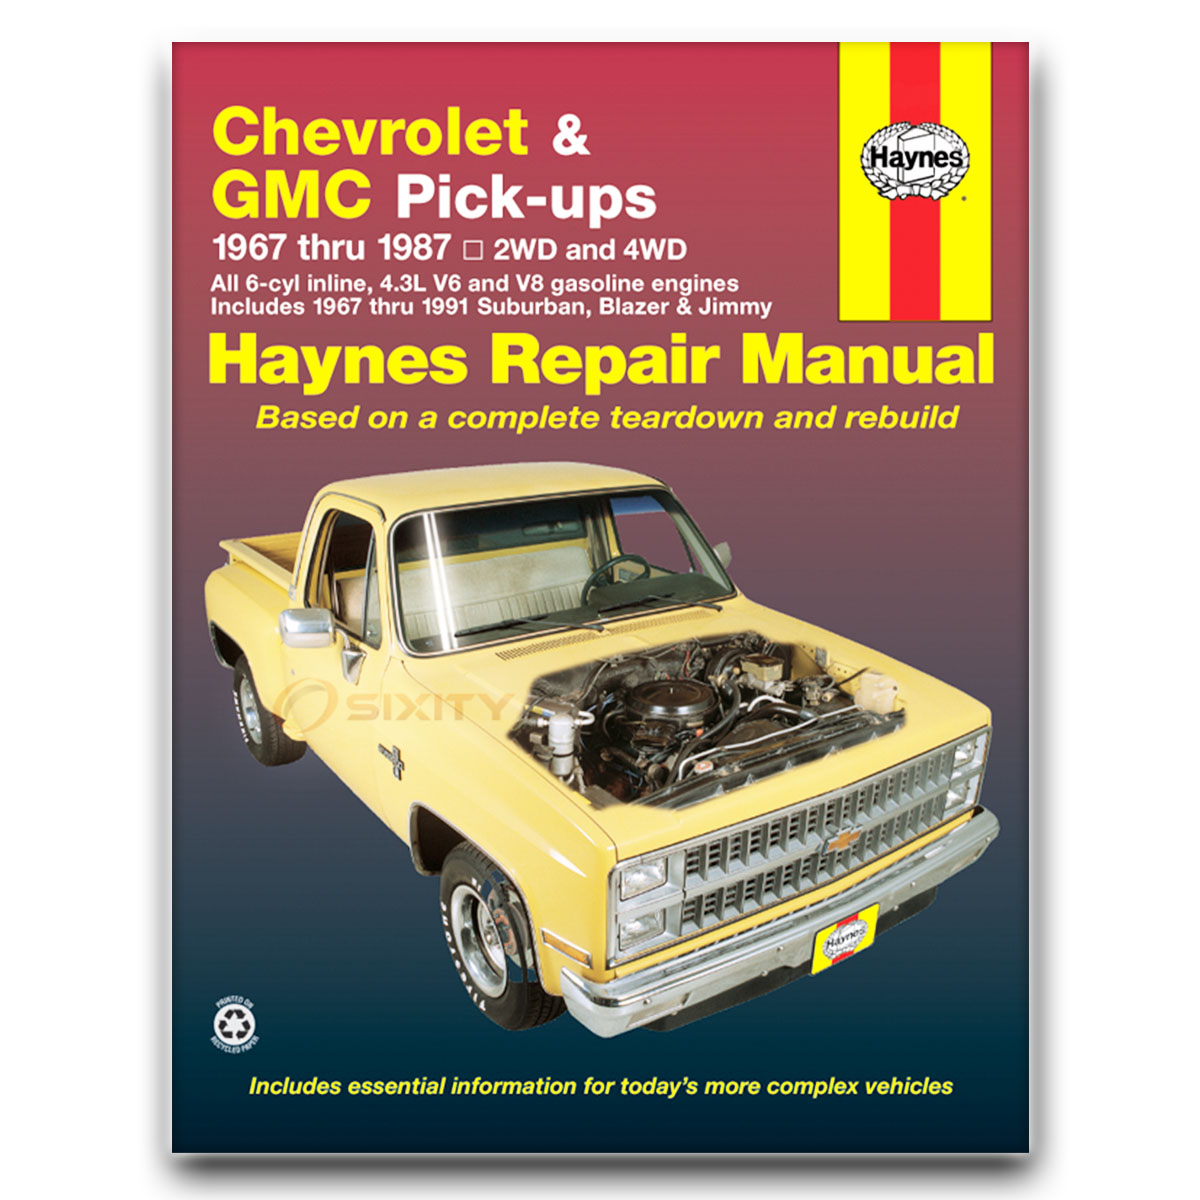 Haynes Repair Manual for Chevy C30 Scottsdale Deluxe Custom Cheyenne ex